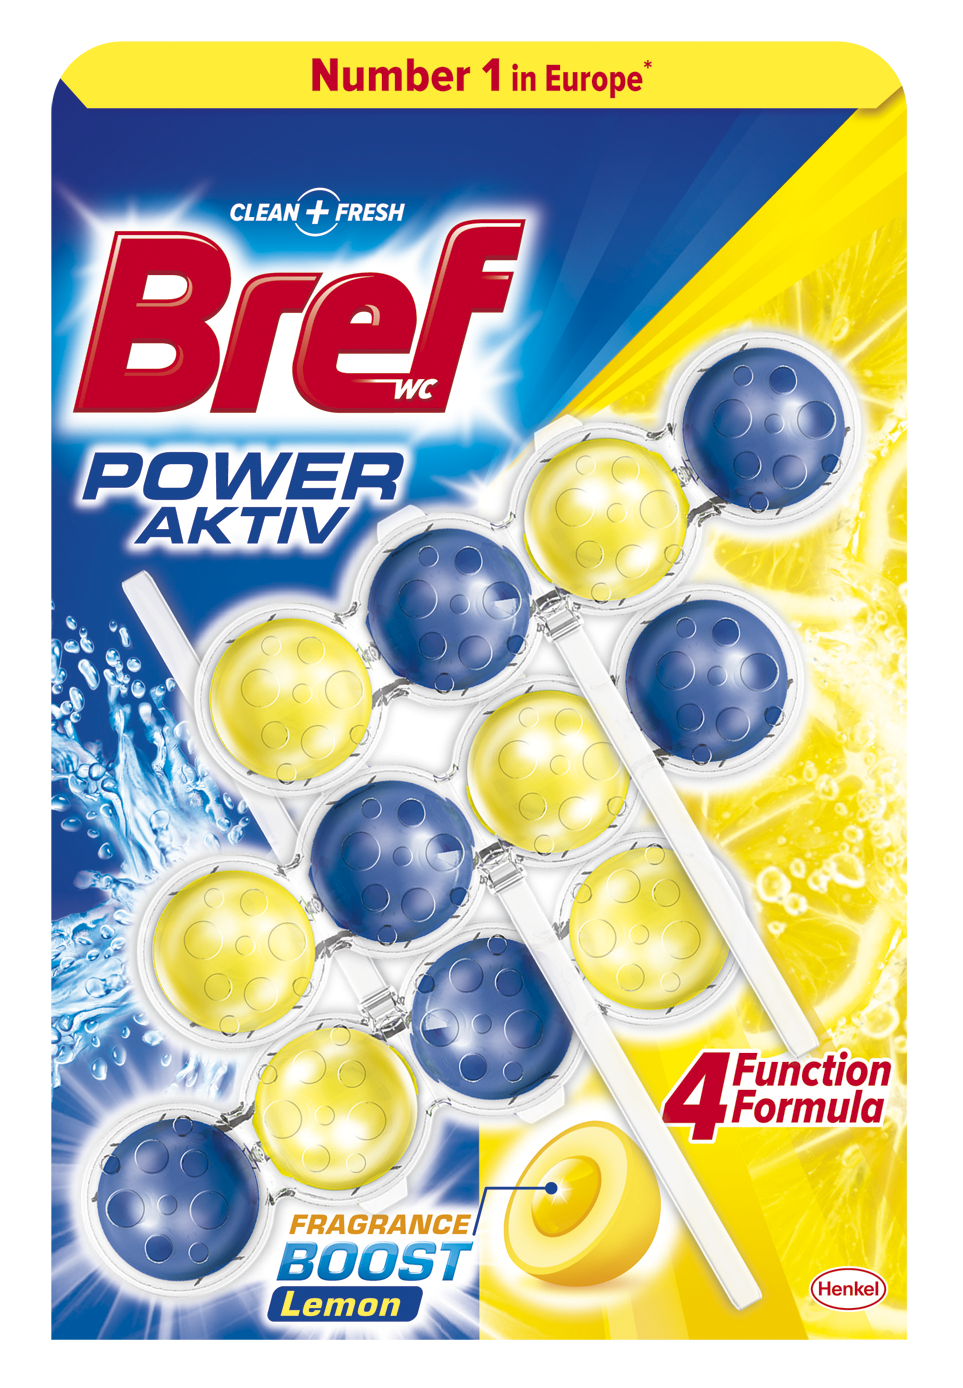 BREF Power Aktiv Lemon WC blok (3x50 g)